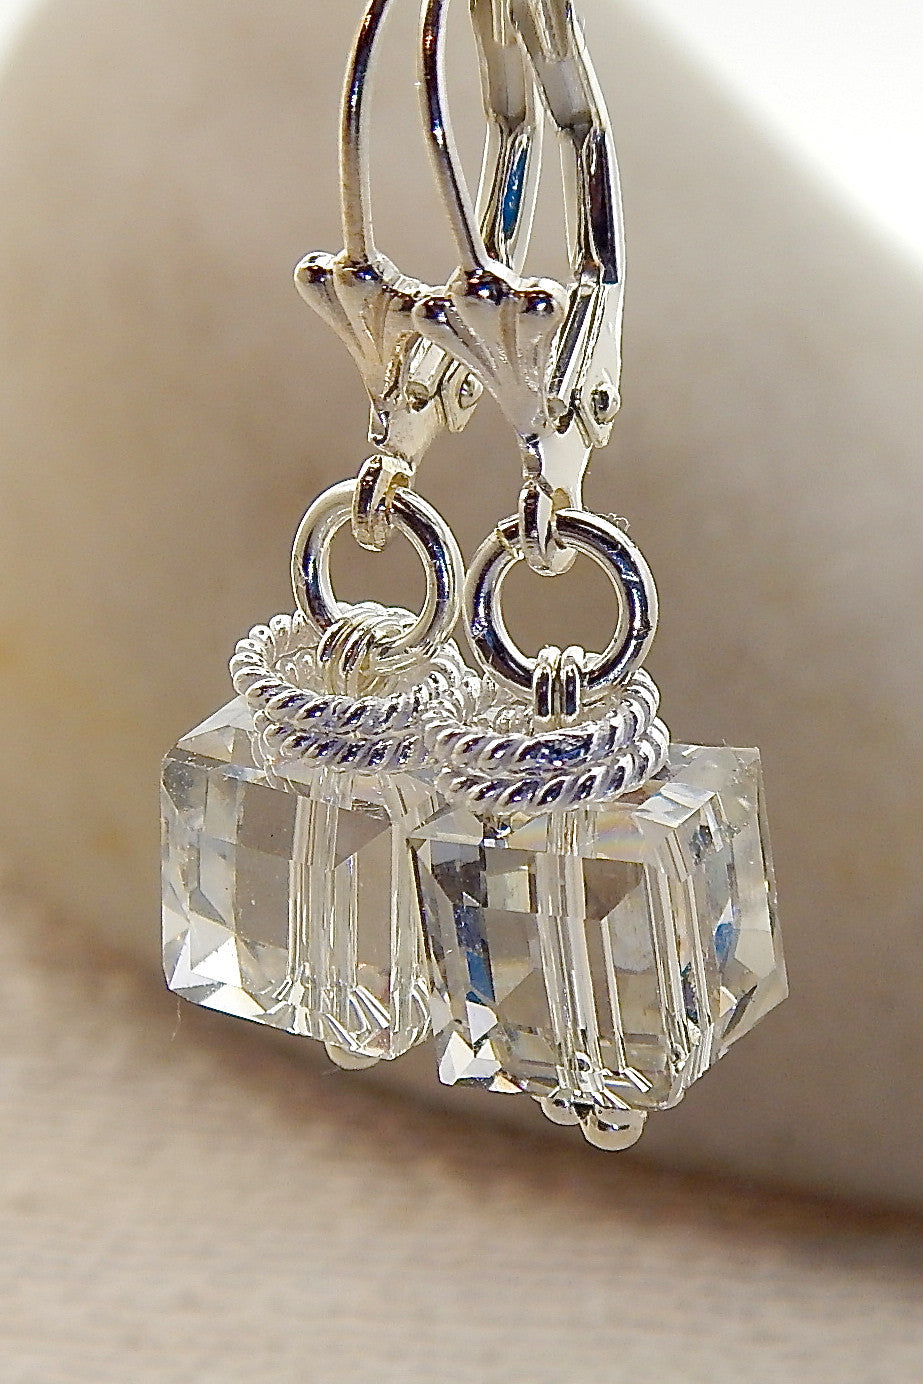 Nicole Earrings - Cubes with a Twist!